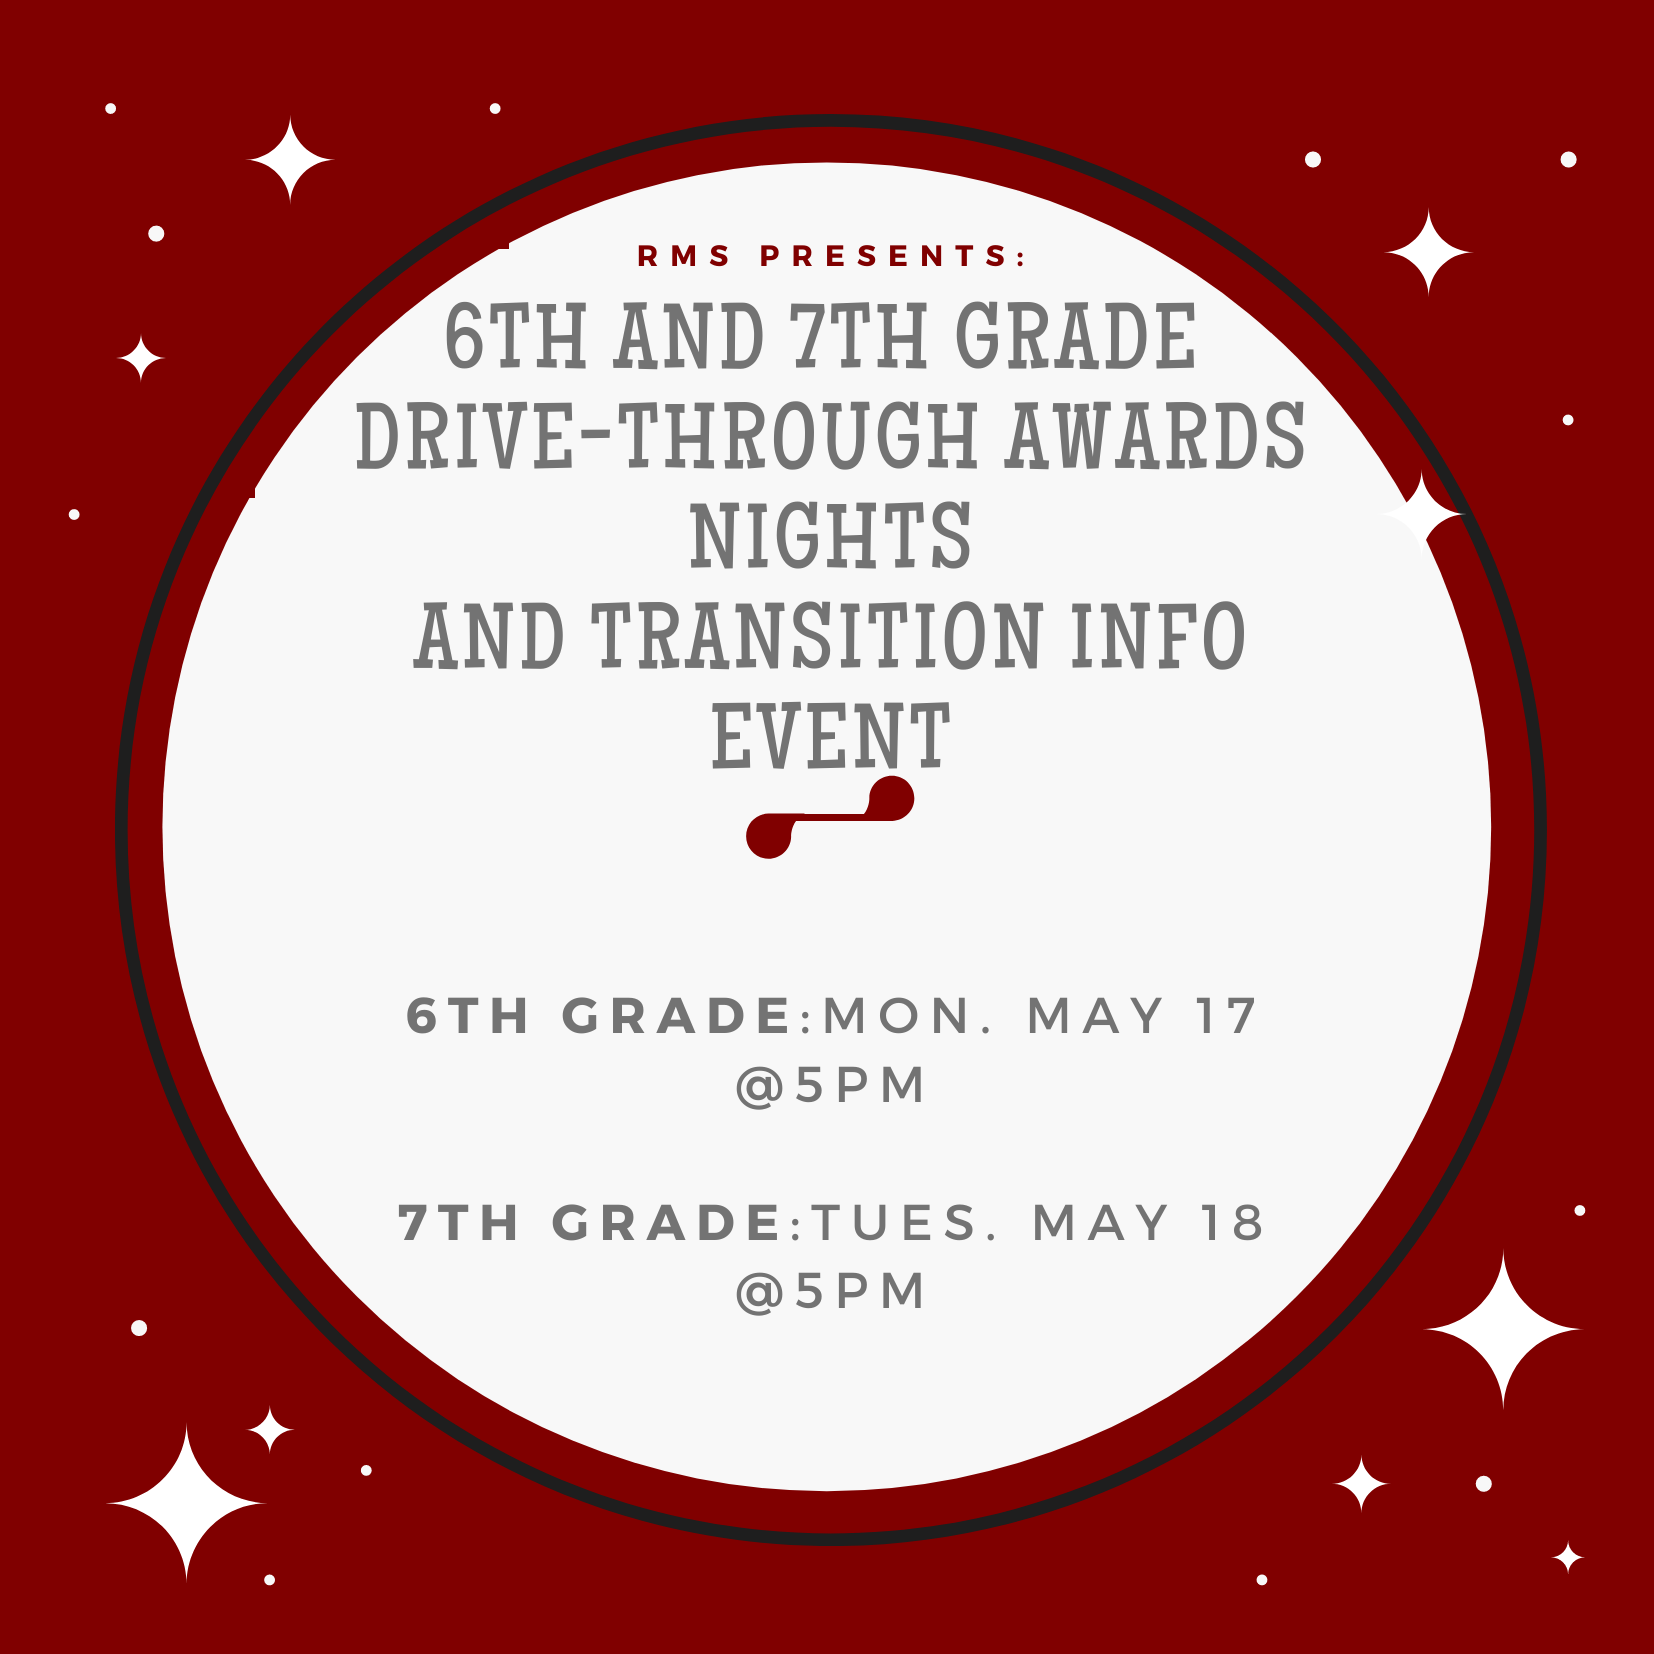 6th and 7th Grade Awards Nights